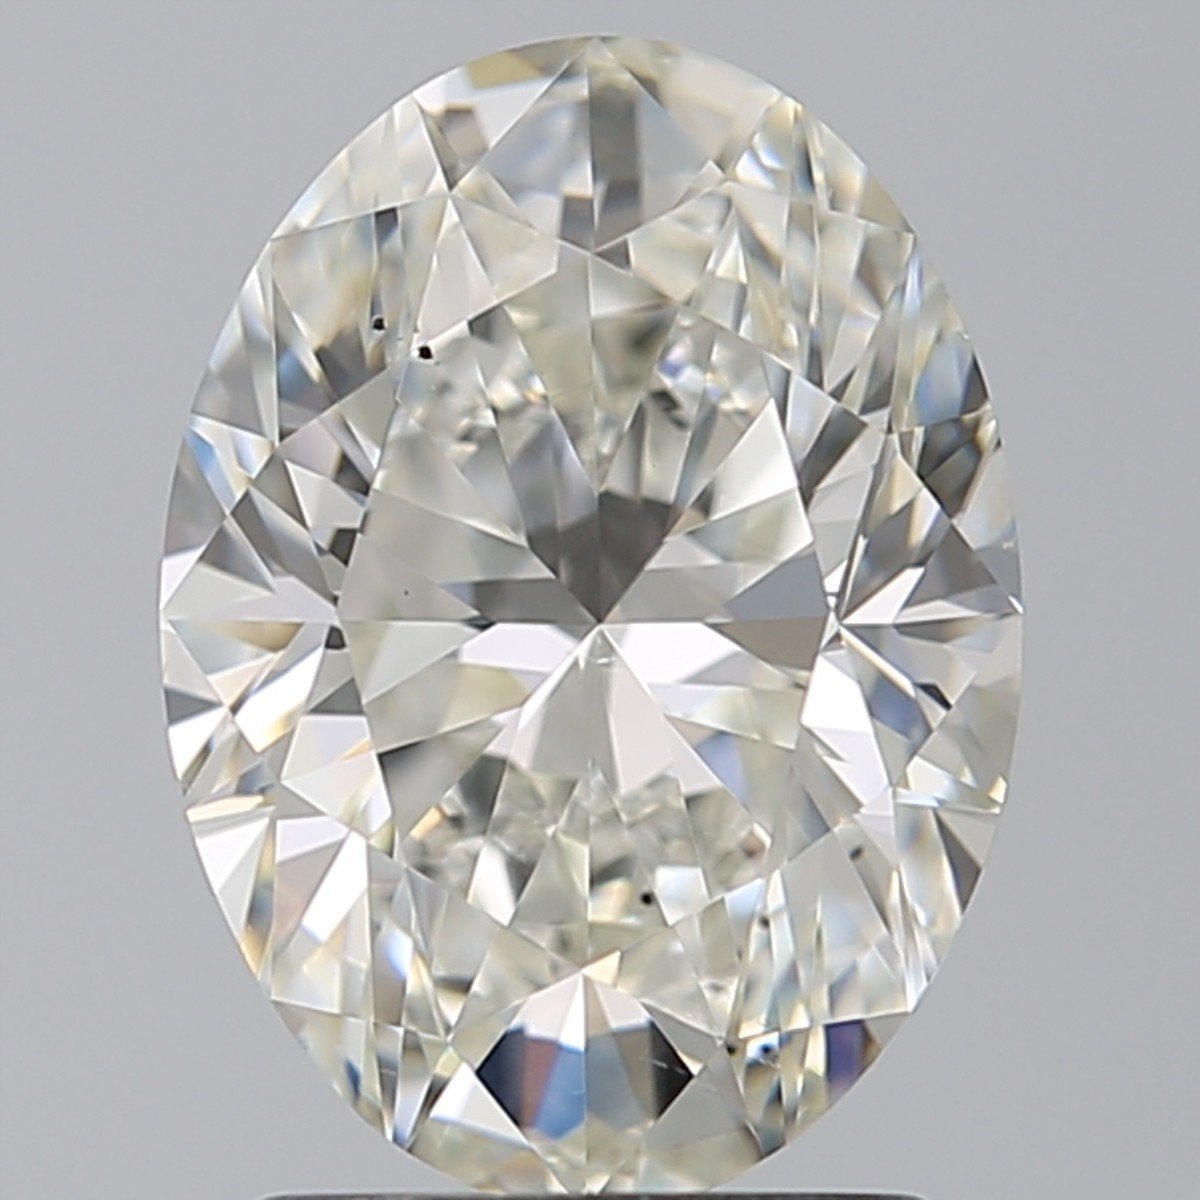 2.02 Carat Oval Diamond (I/VS2)